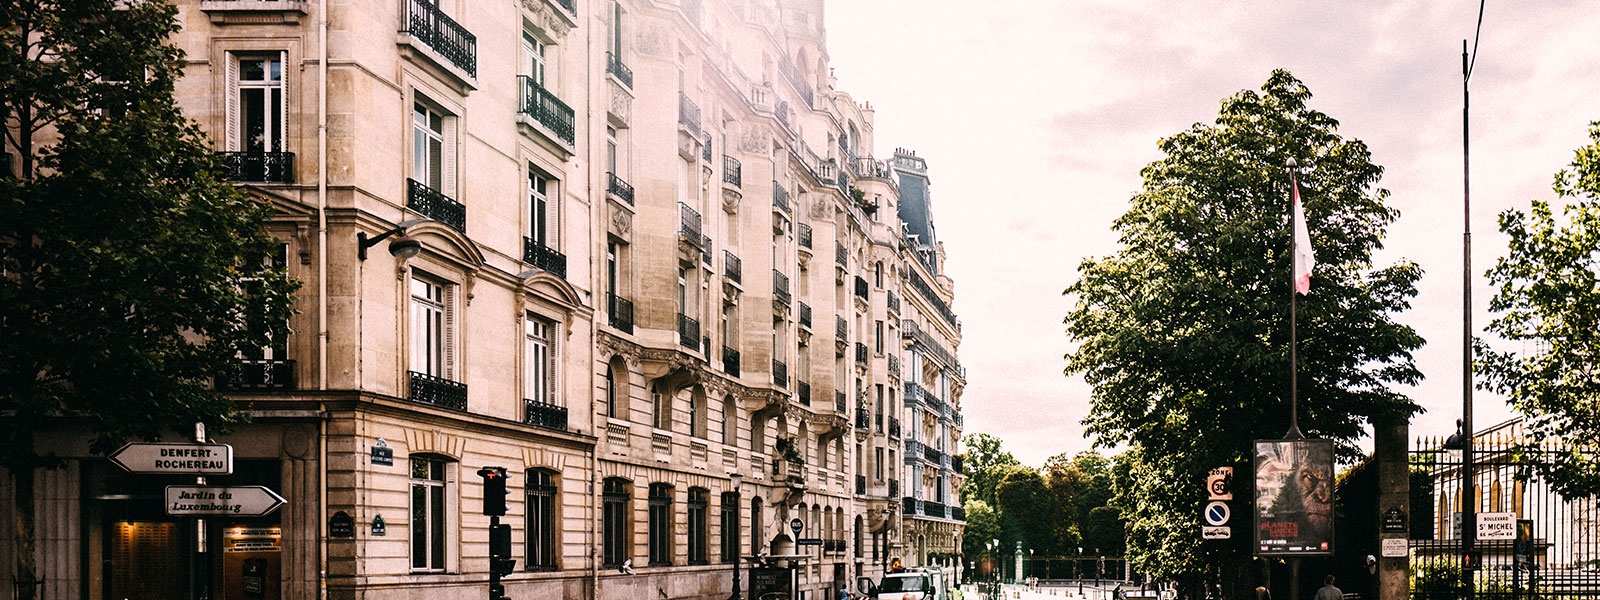 Buildings lining a street in France